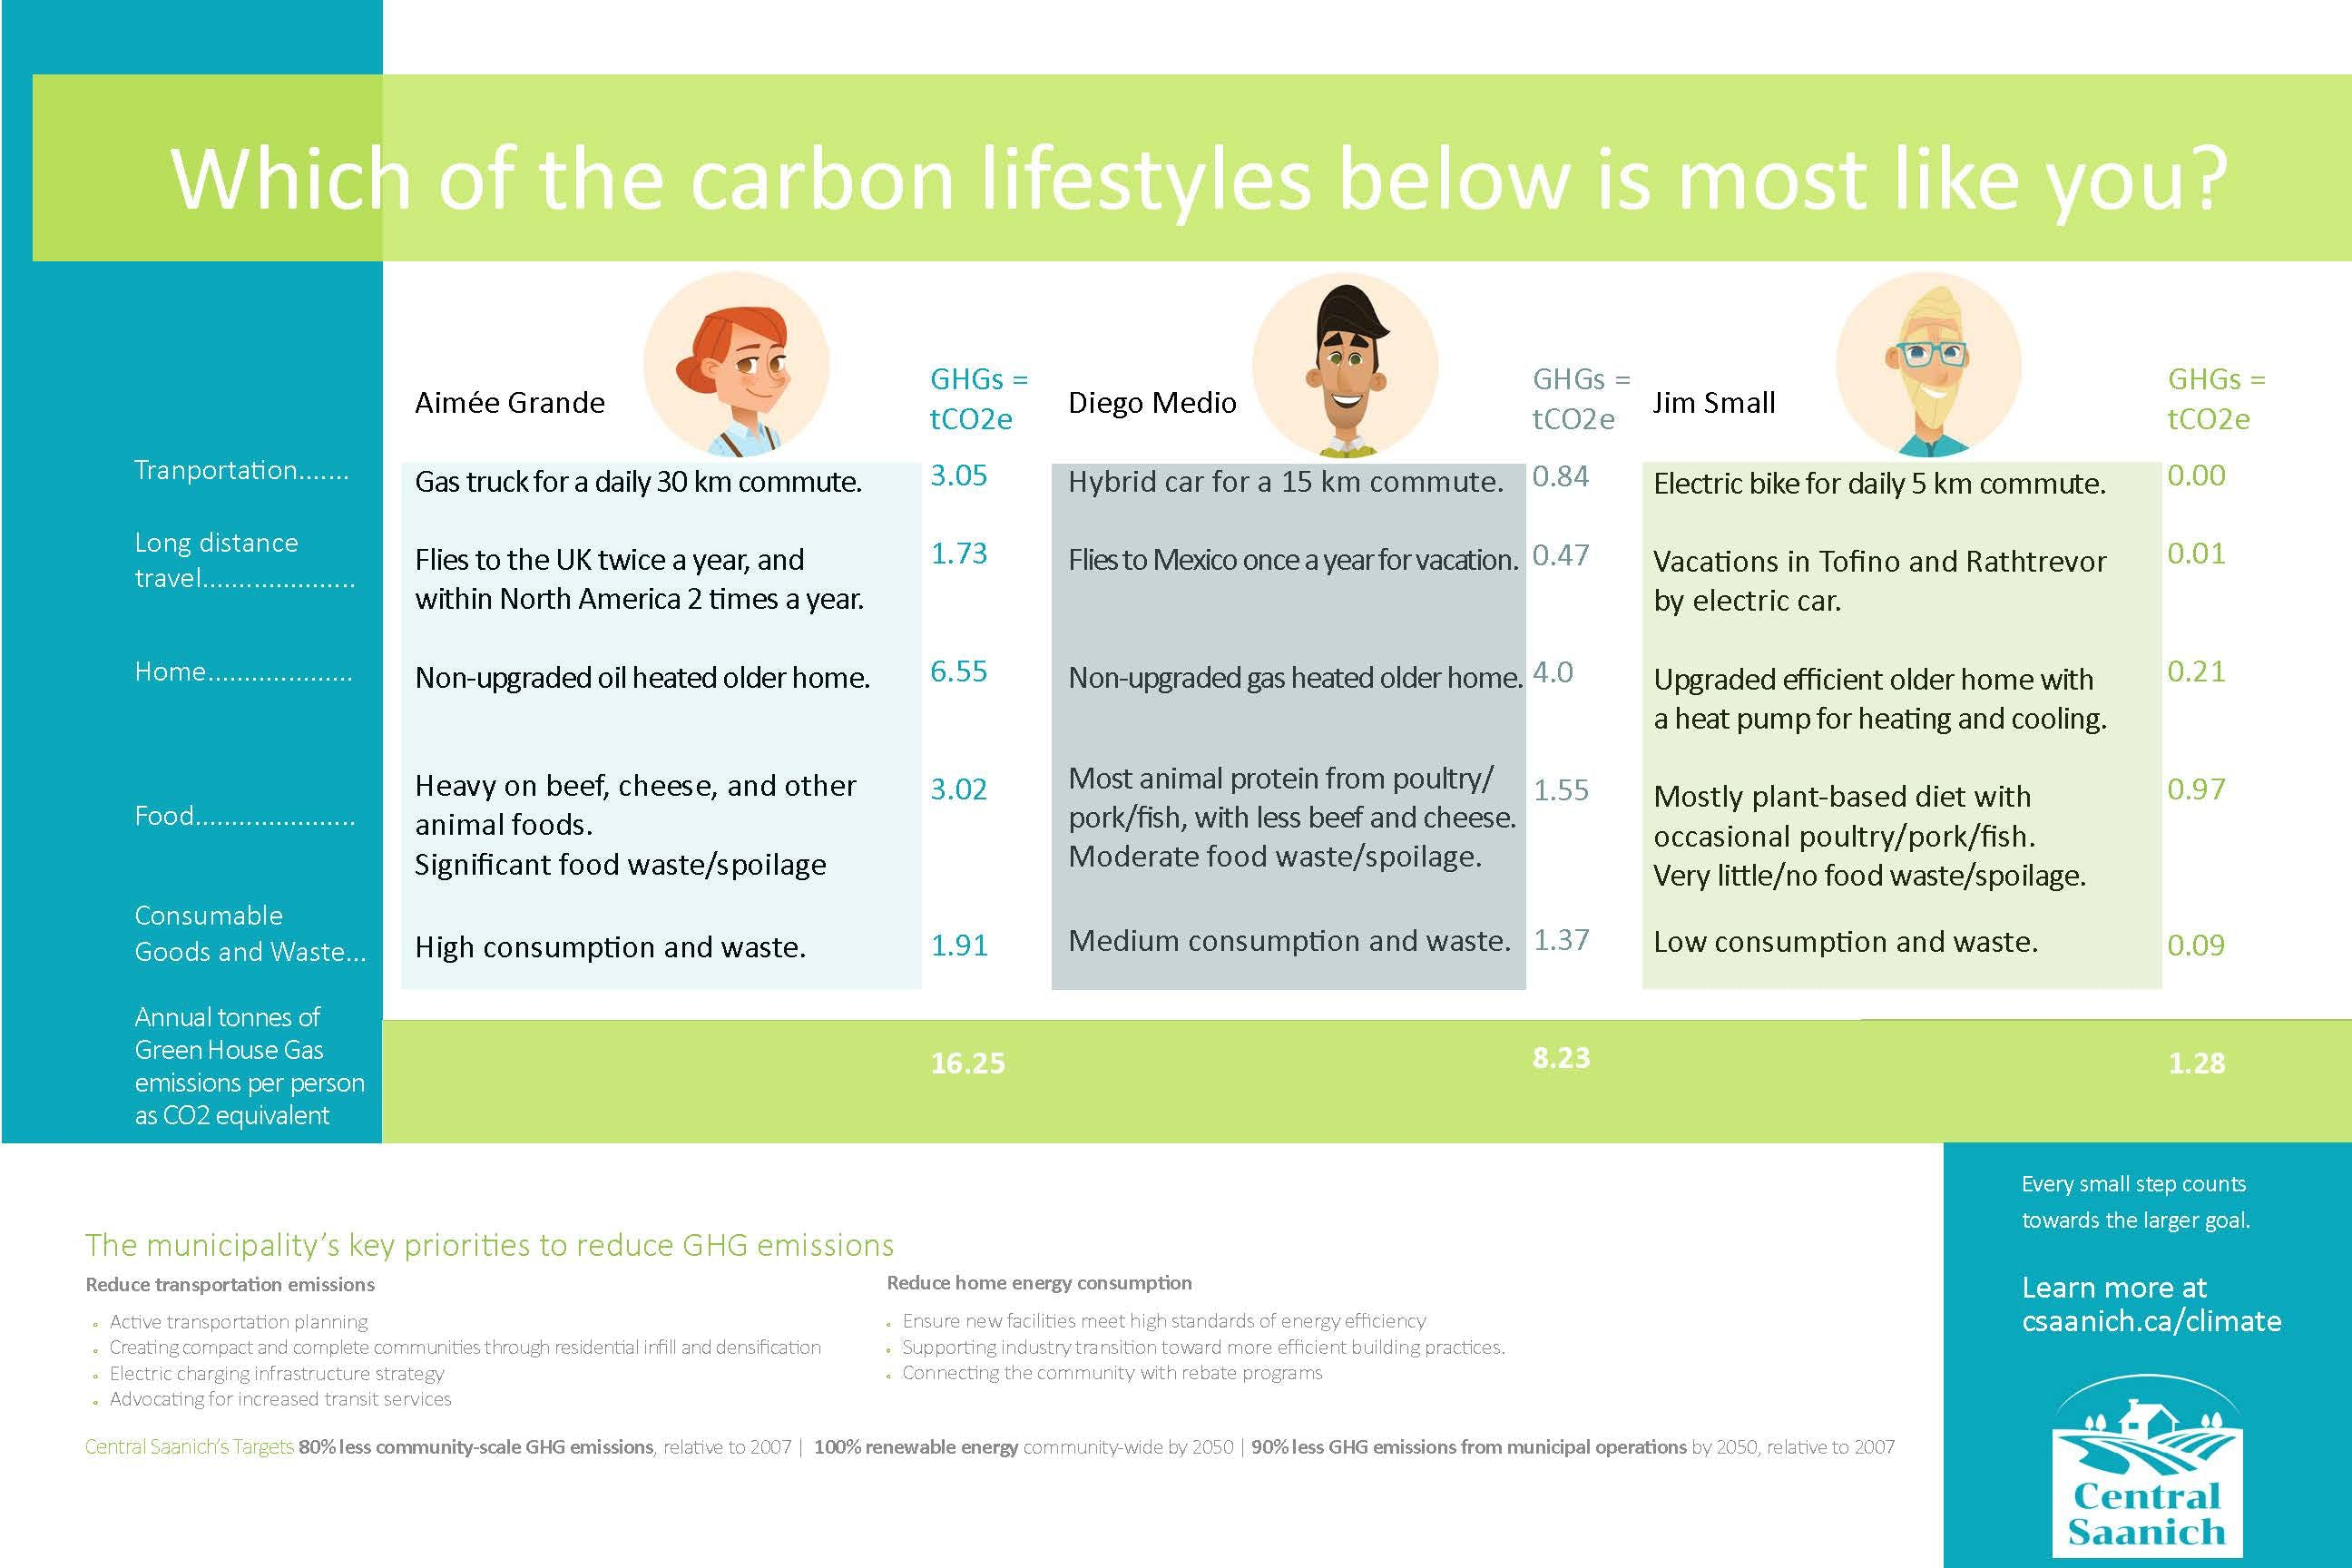 Carbon lifestyles poster